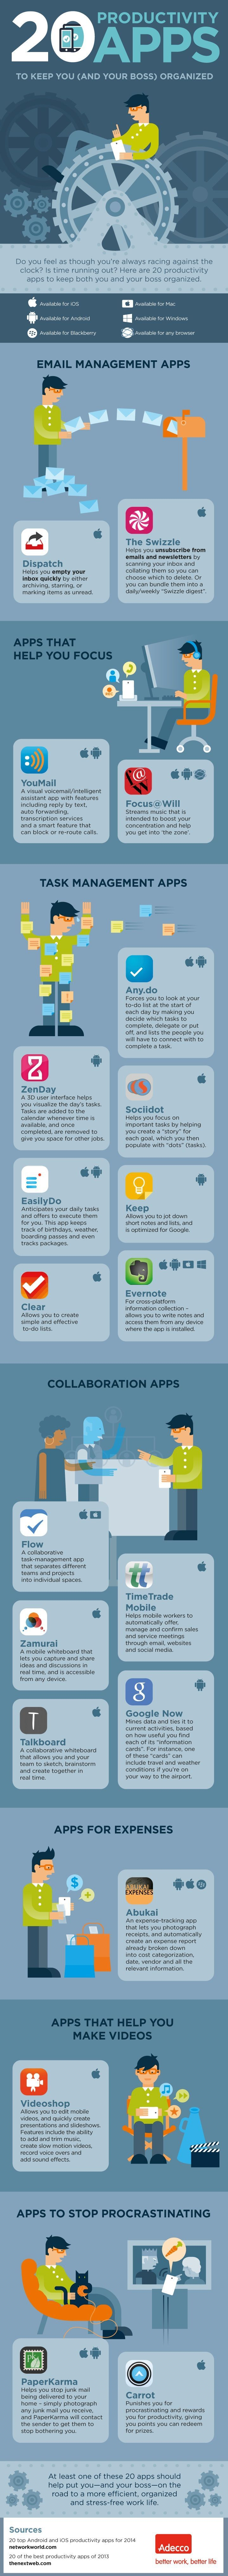 Need to stay organised? The solution is literally in your pocket -- your smartphone. Countless people (students, businesspeople, creatives, etc.) use mobile productivity apps like Evernote, http://Easily.Do, and http://Any.DO to stay on top of things. Which mobile app helps you organise your life? Here are some more tips to help you be the most organised…